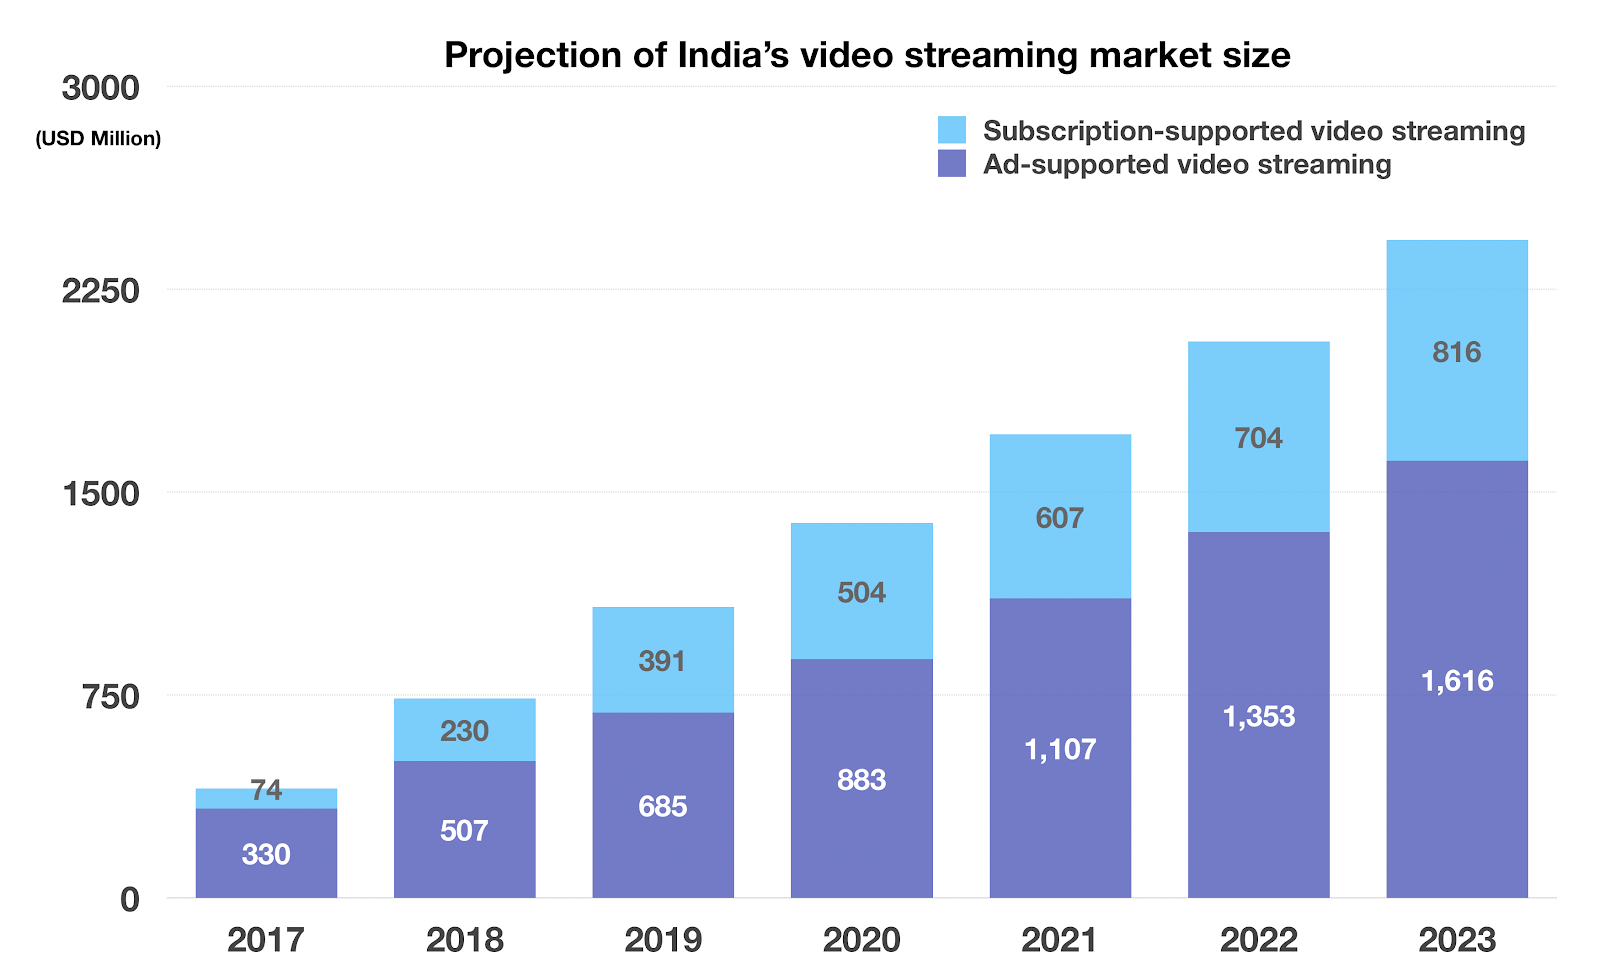 projection of India's video streaming market size